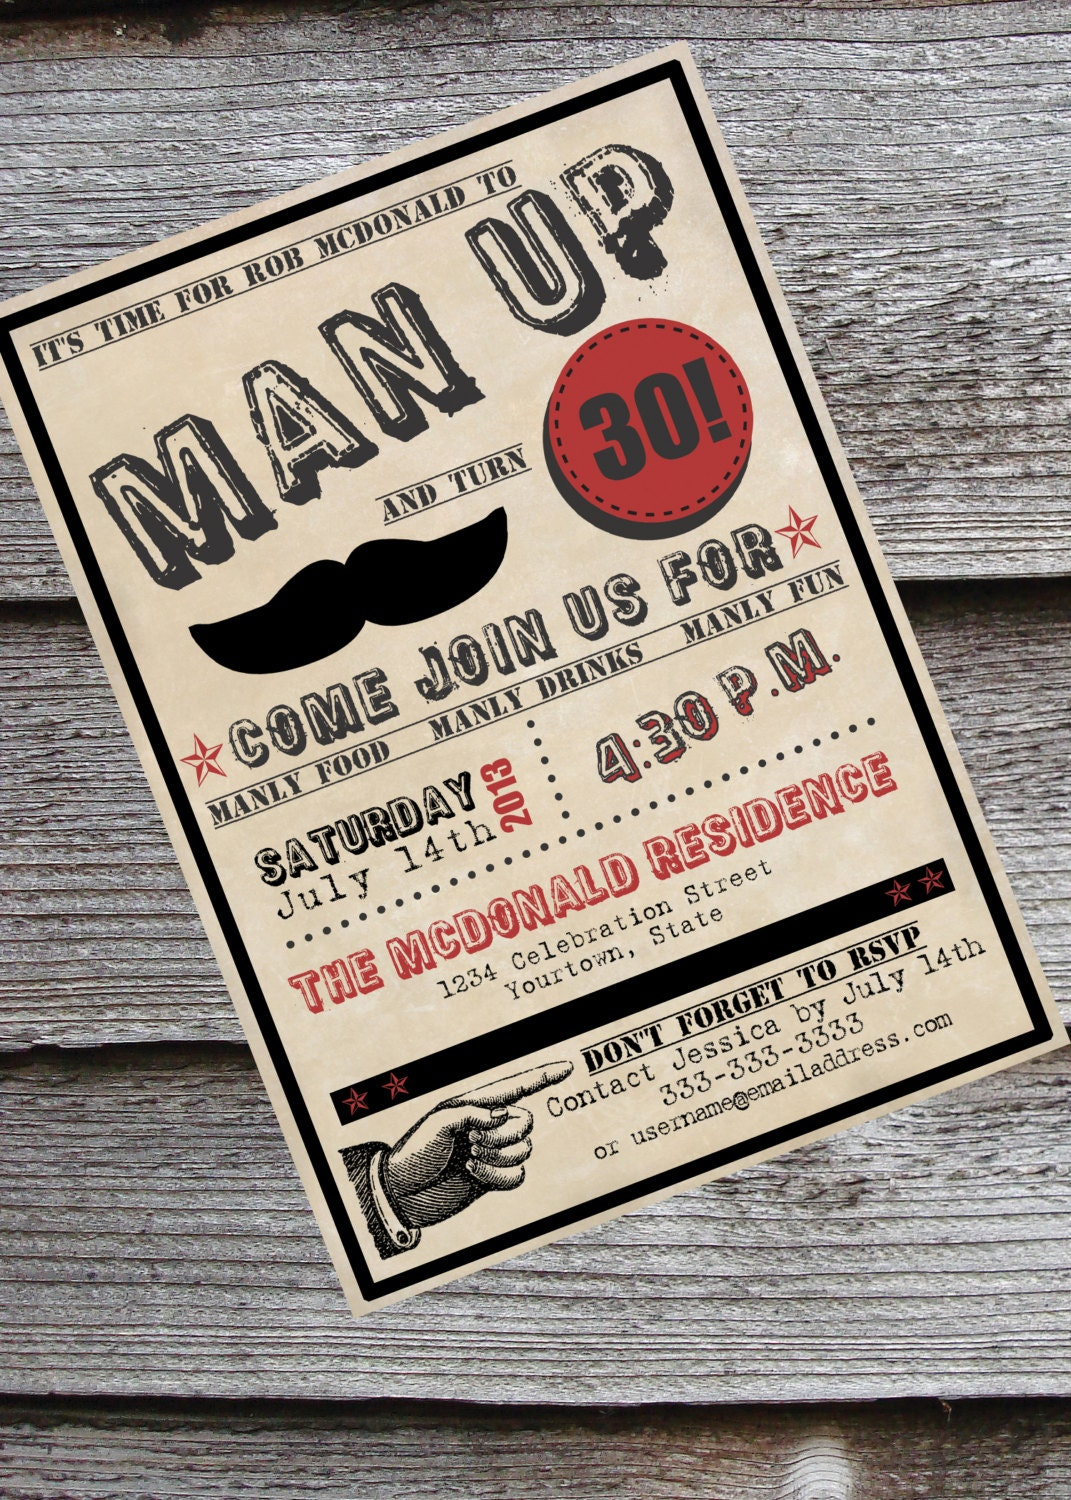 Man-Up guy's 30th or 40th birthday by NeverStopCelebrating on Etsy